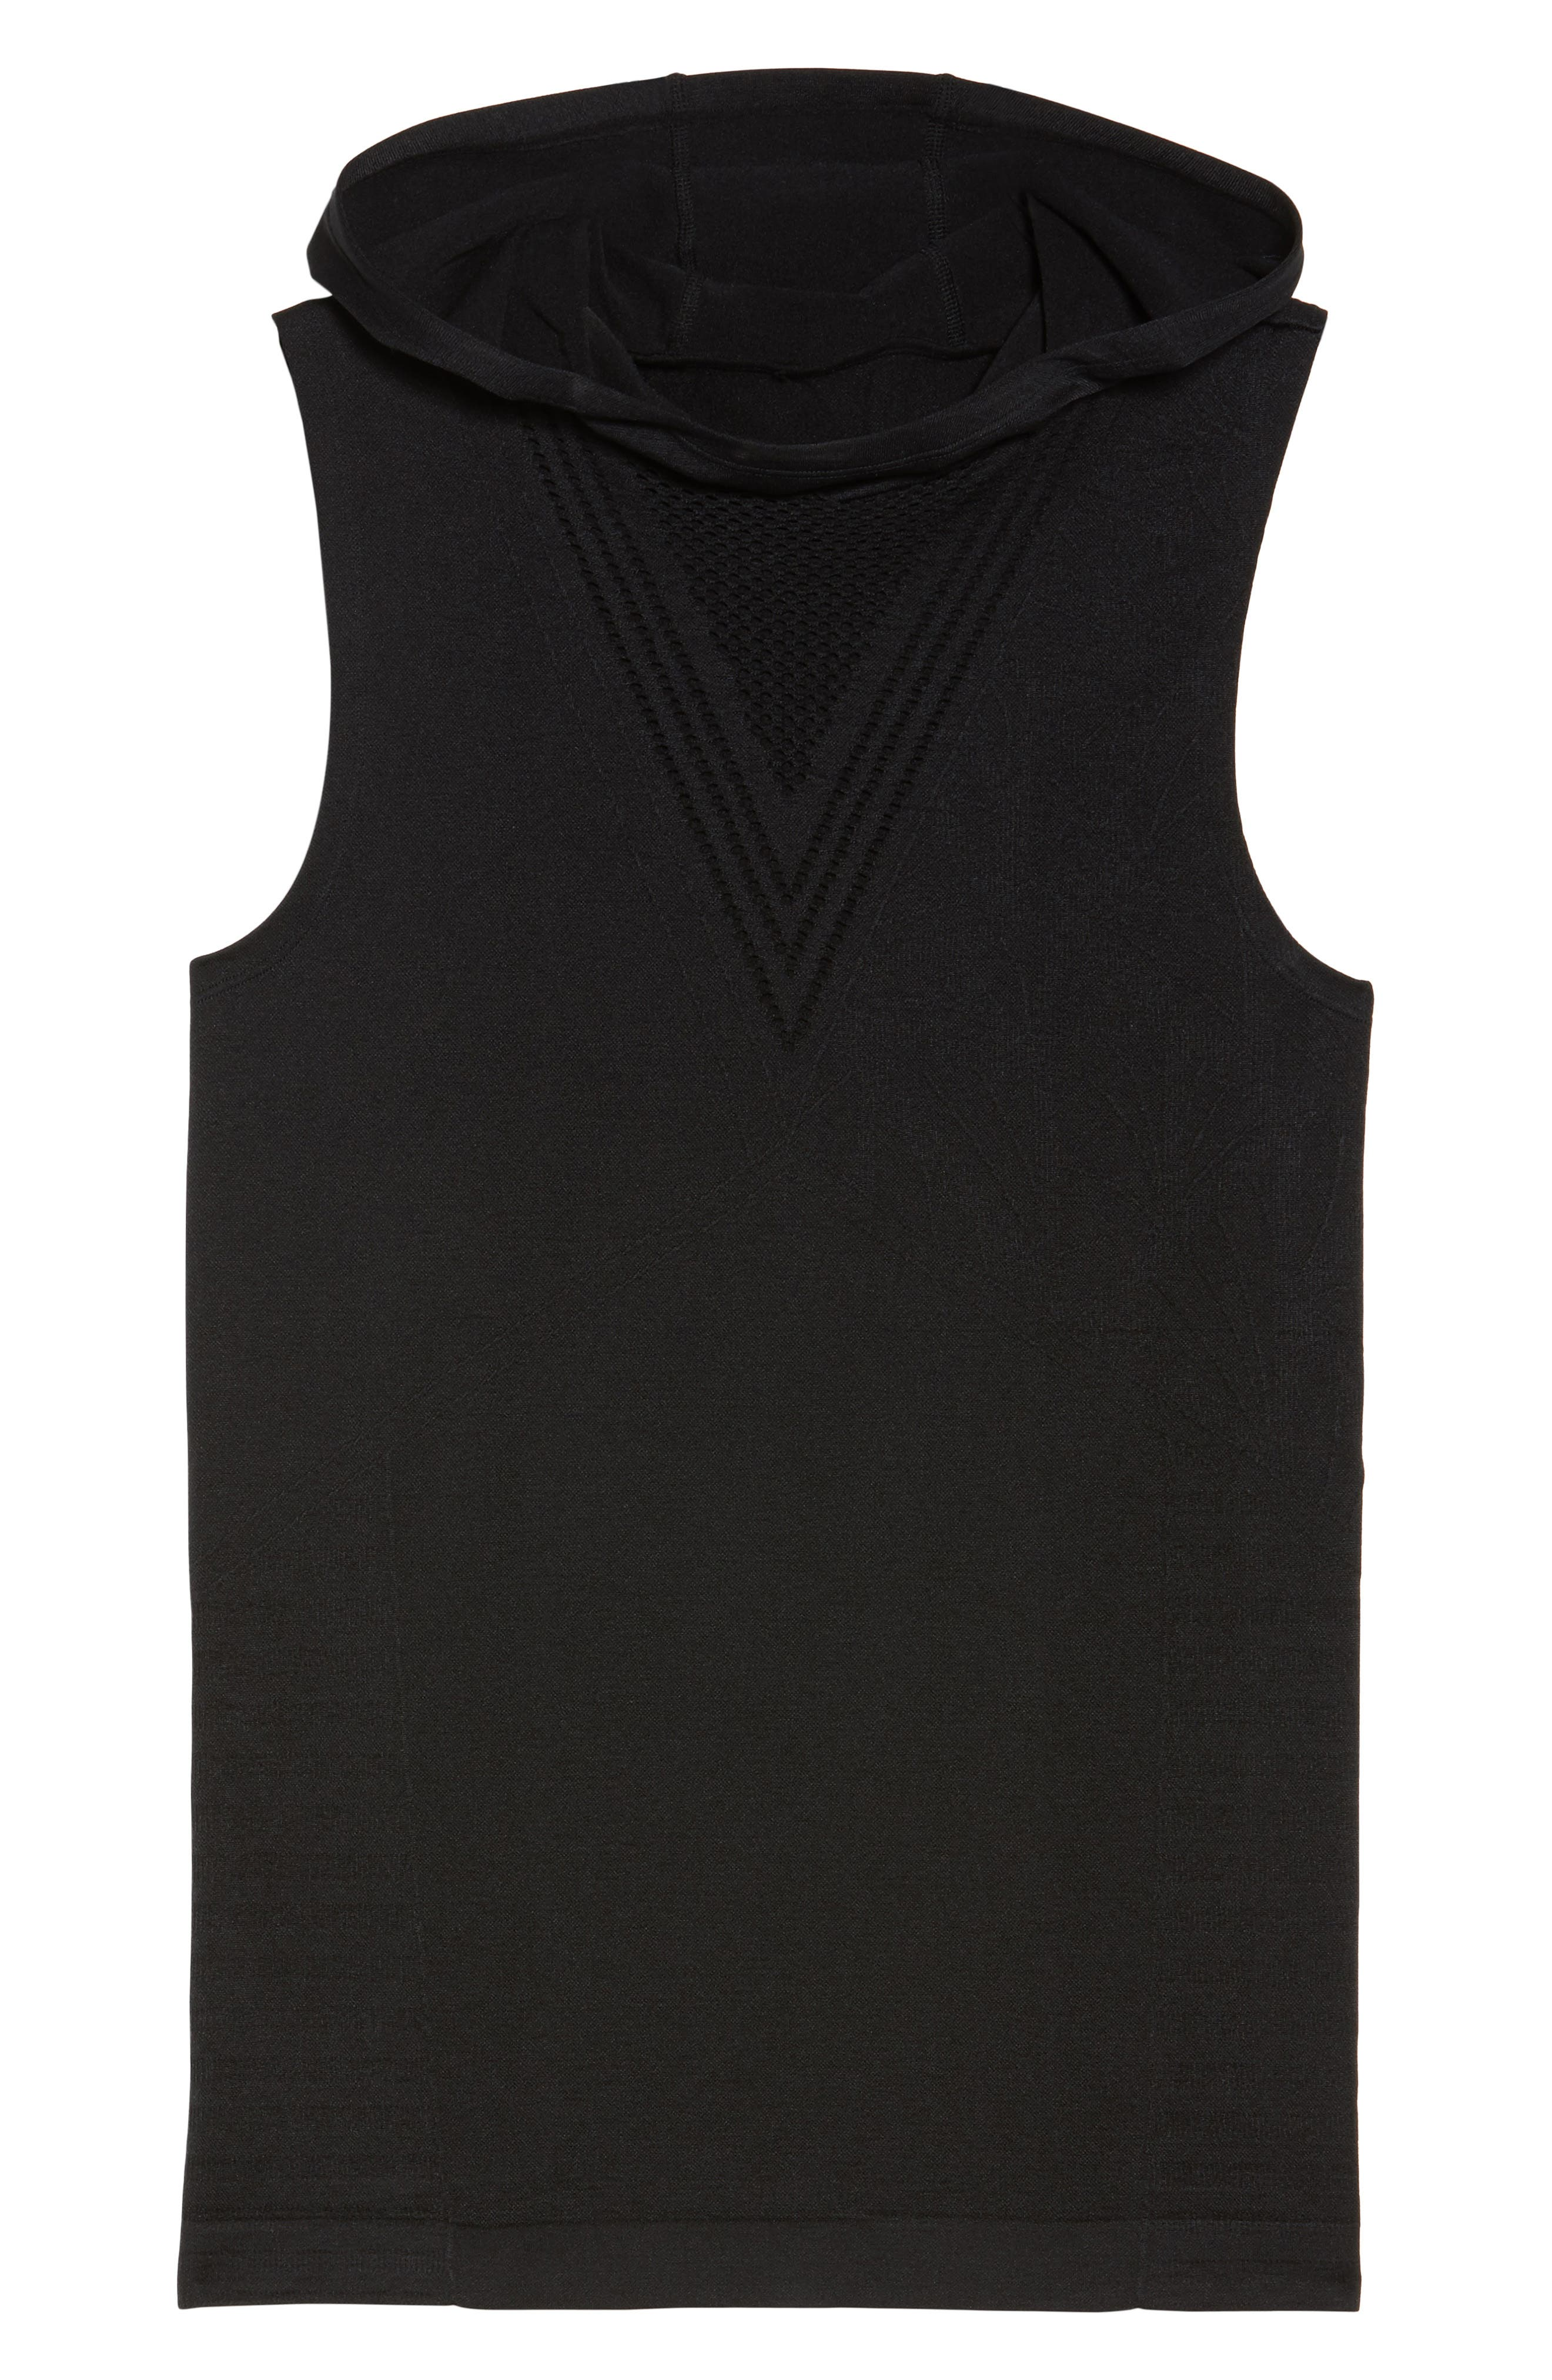 Velocity Sleeveless Hoodie,                             Alternate thumbnail 7, color,                             001